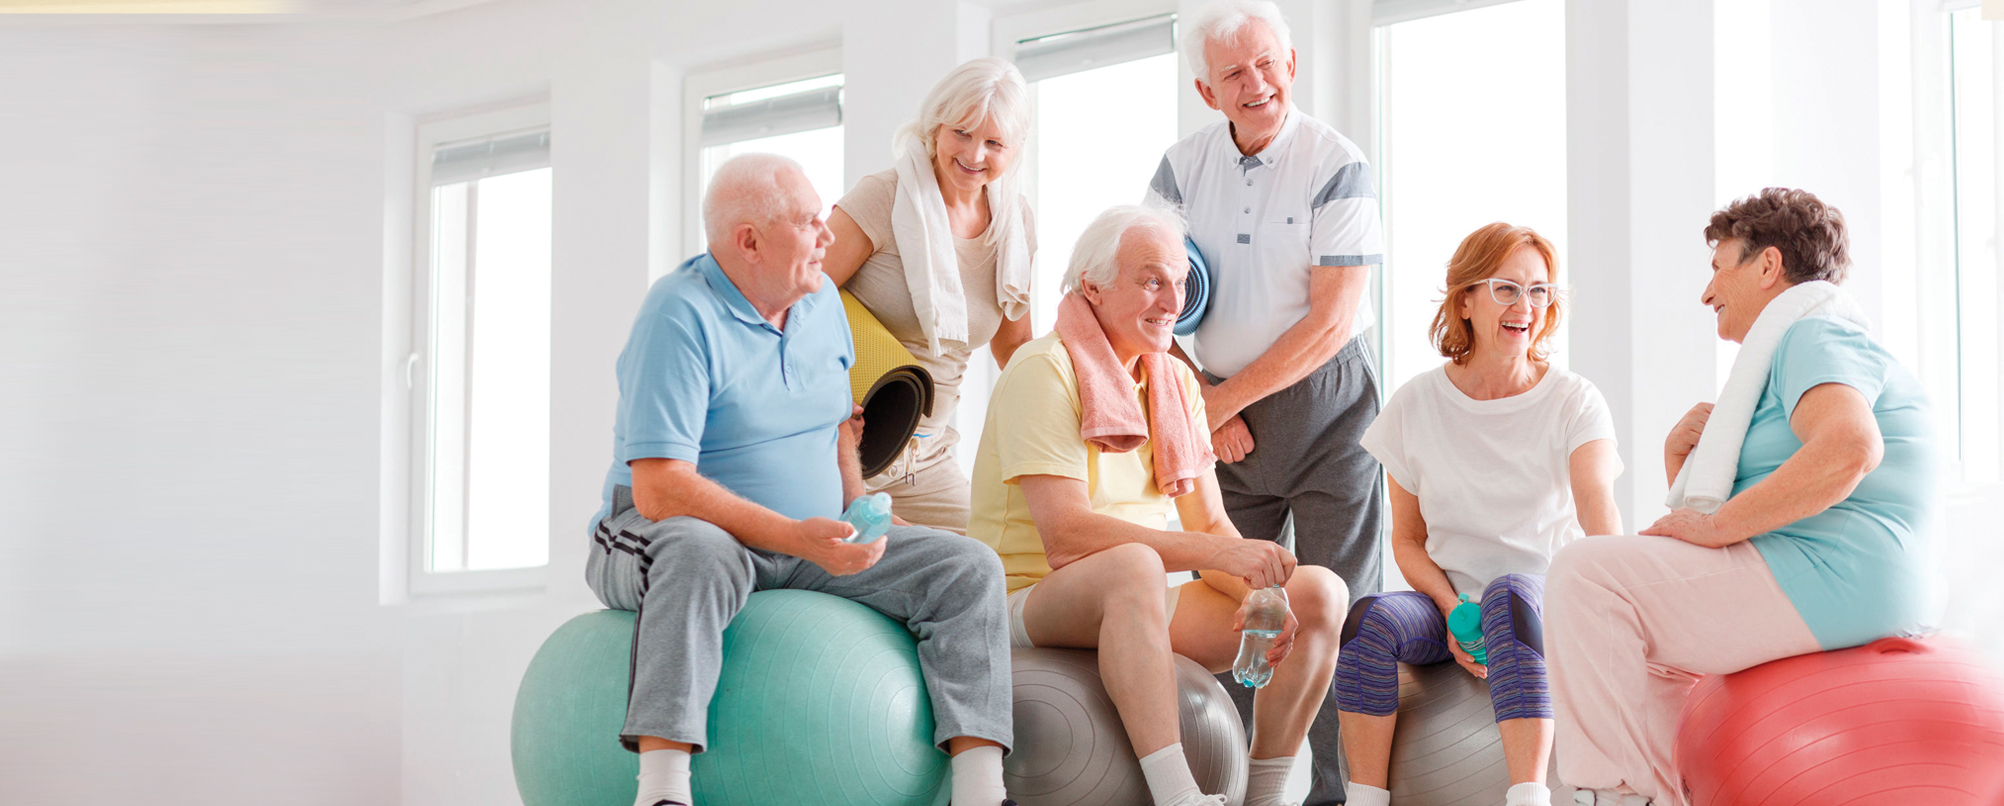 Happy group of active seniors sitting on and around exercise balls